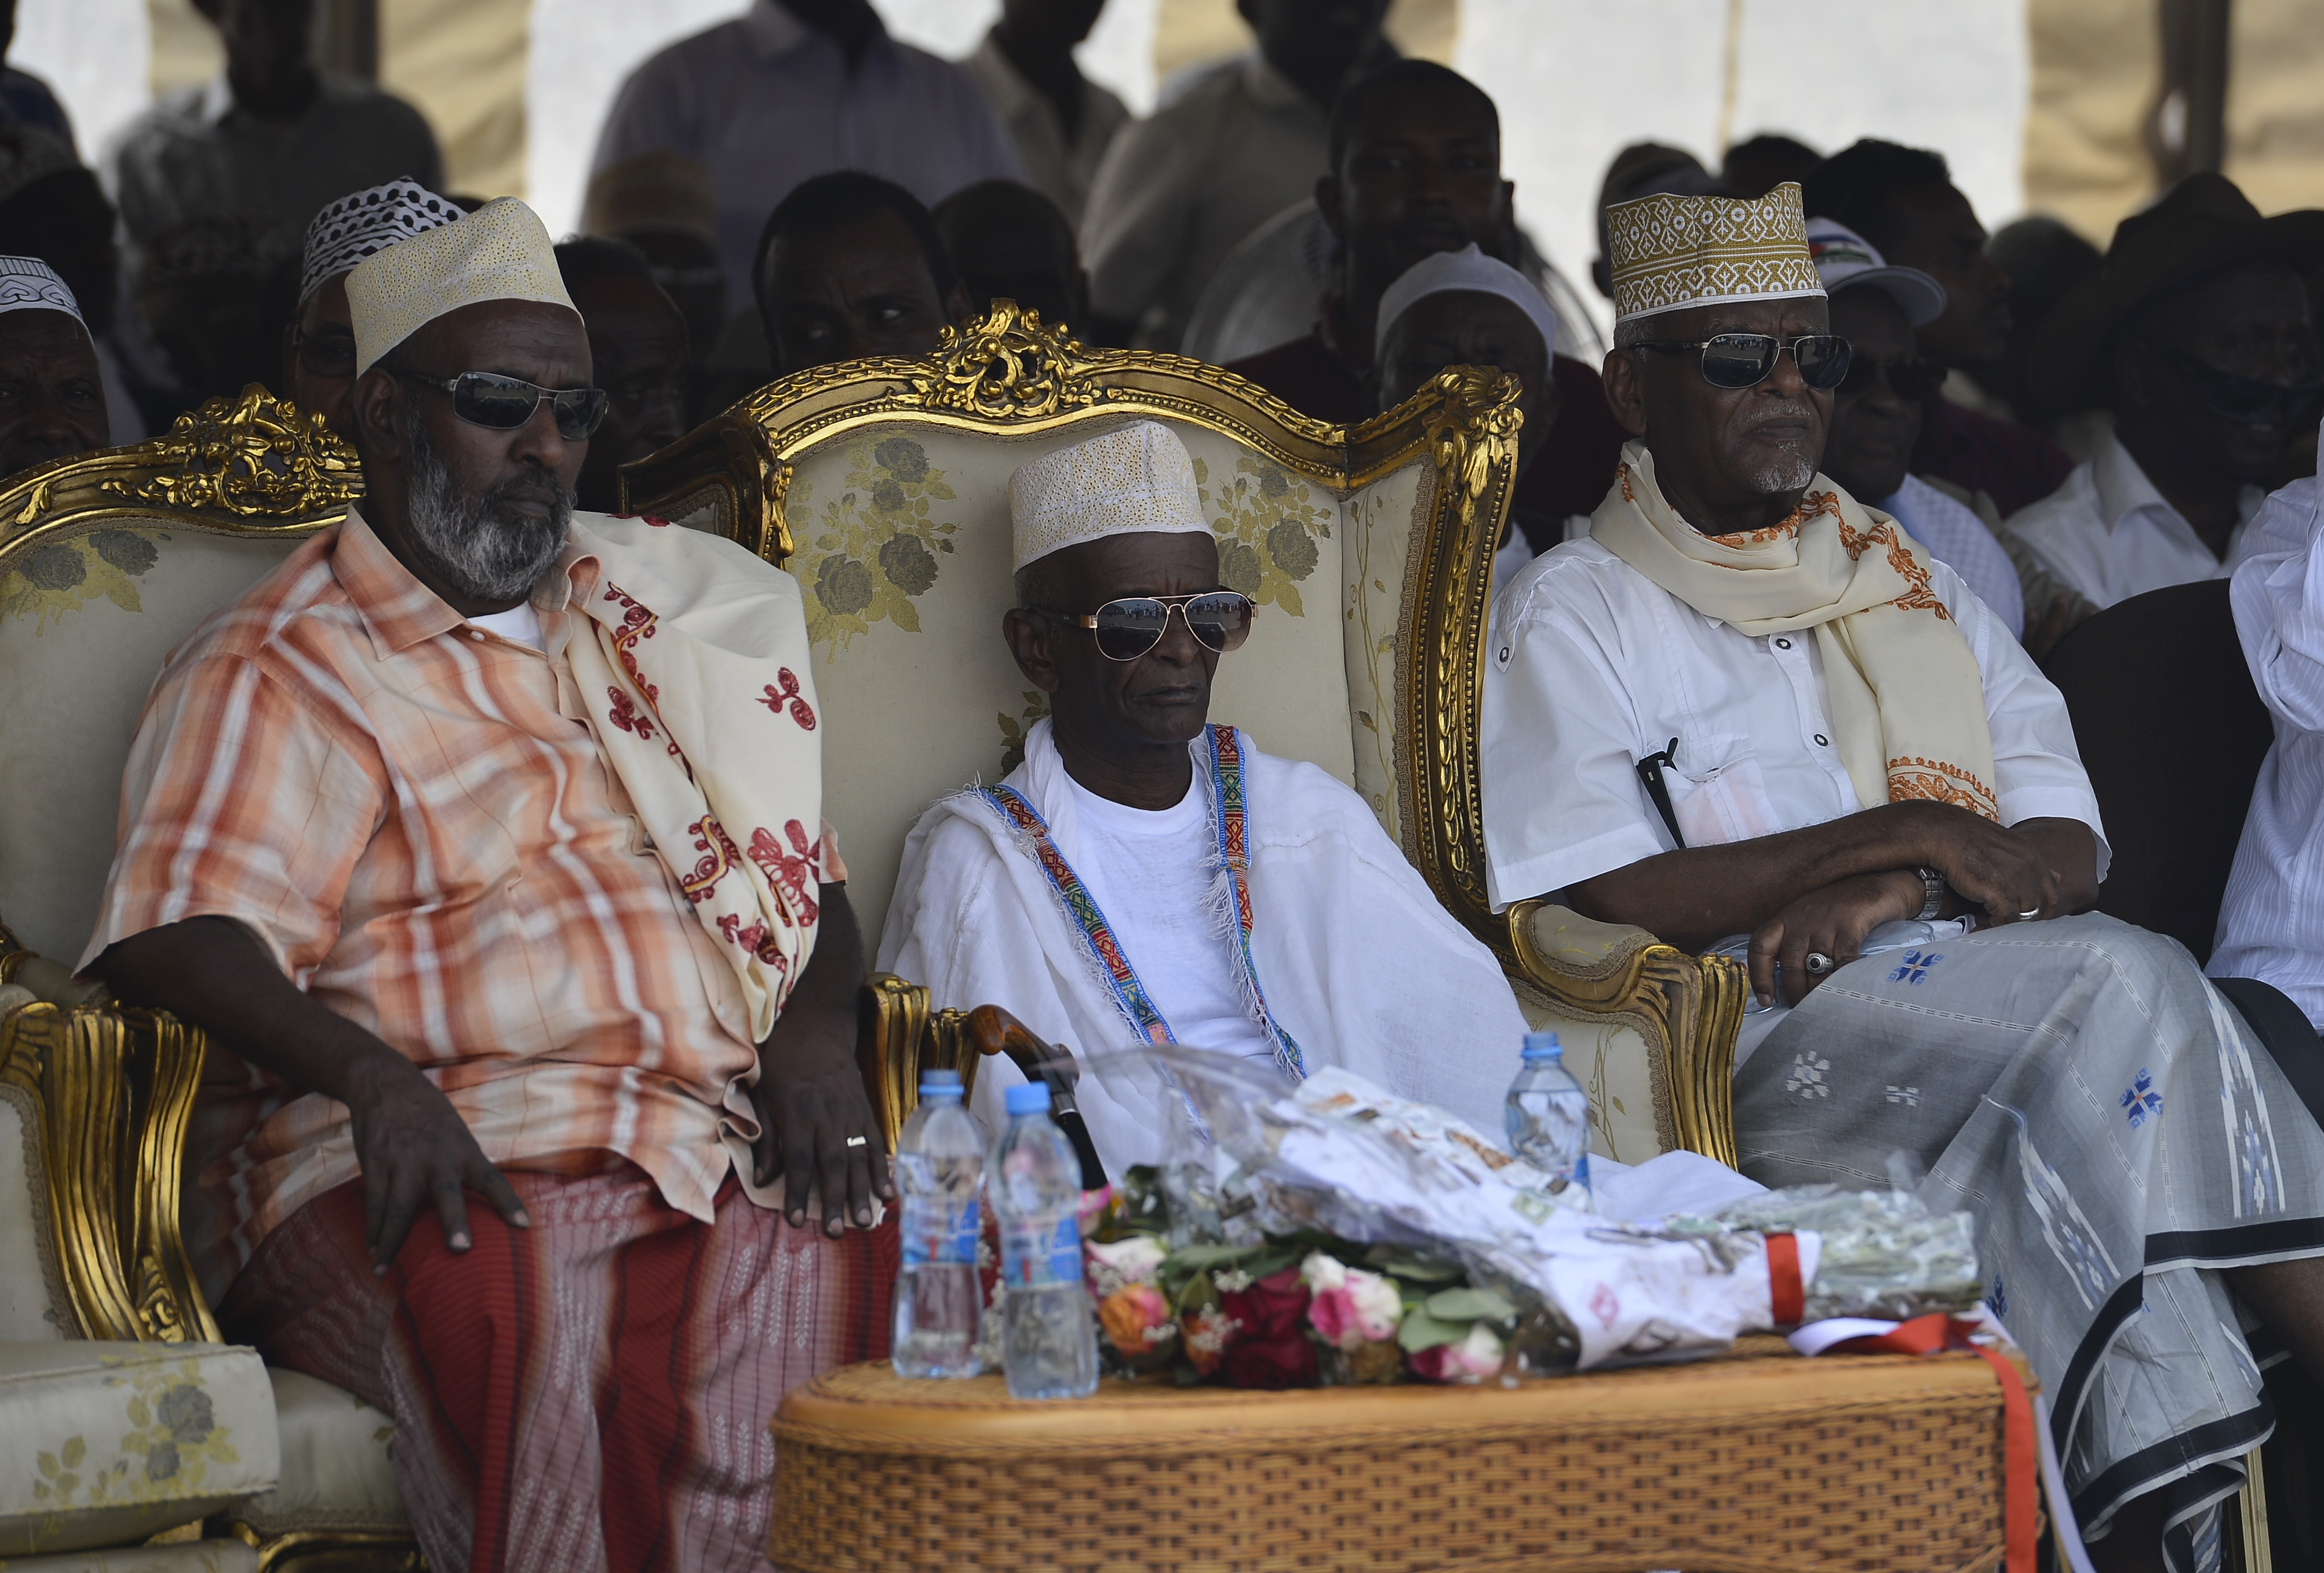 "Habib Mohamed Loita, the 21st Sultan of Gobaad, center, watches entertainment provided during his induction ceremony in Dikhil, Djibouti, May 22, 2015. ""Boko Habib,"" as the community calls him, succeeded his late brother Ali Mohamed Loita, and serves as the mediator between the government and the people. (U.S. Air Force photo by Senior Airman Nesha Humes)"